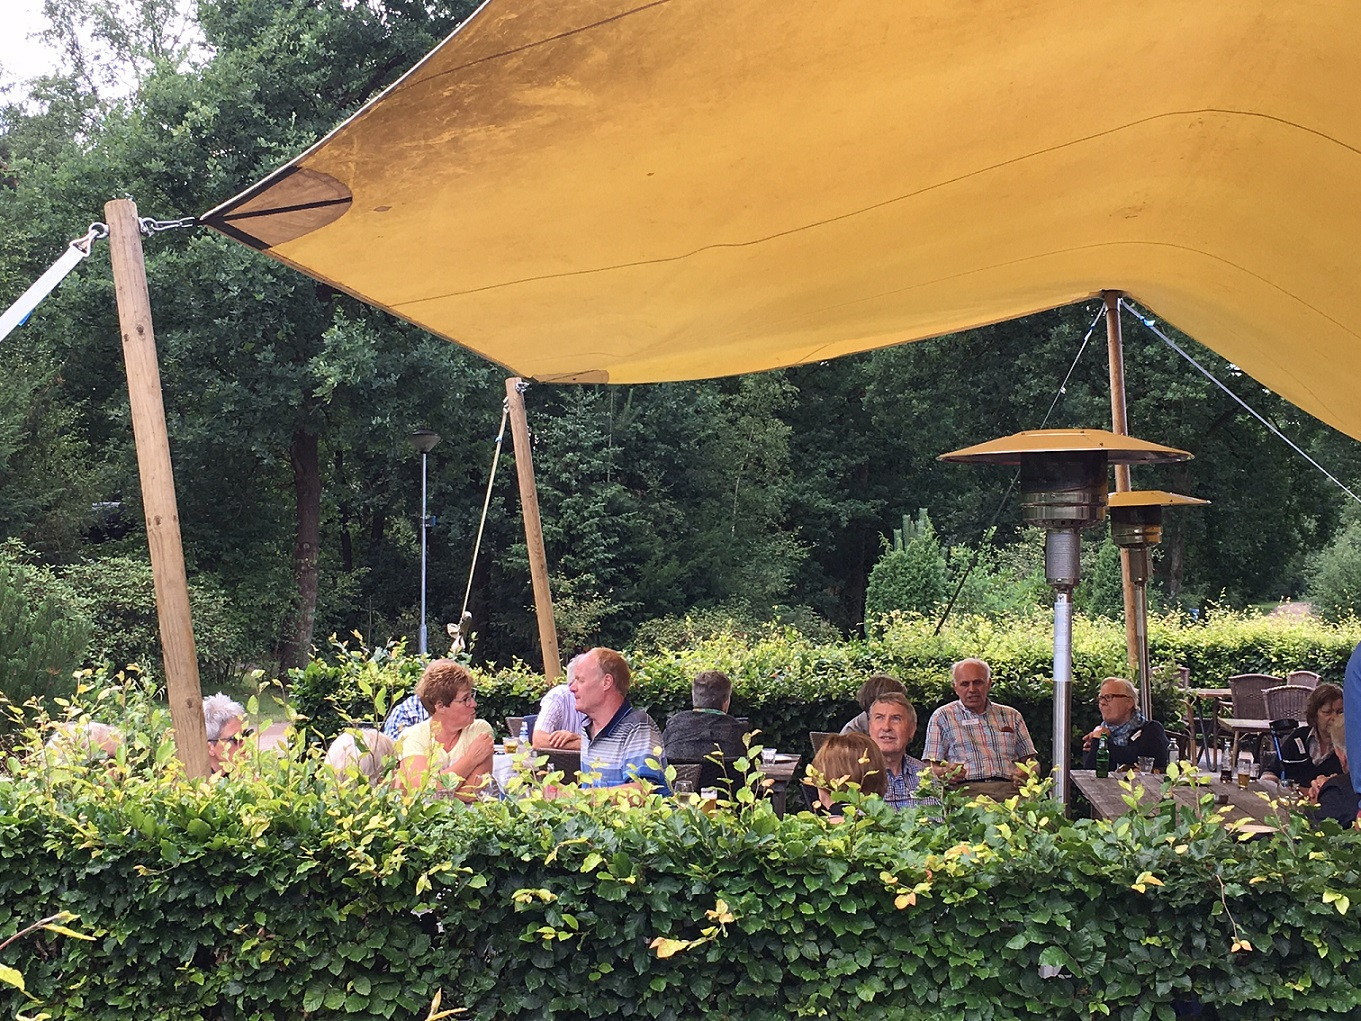 zomercafe voor 55+singles Outdoors Holten